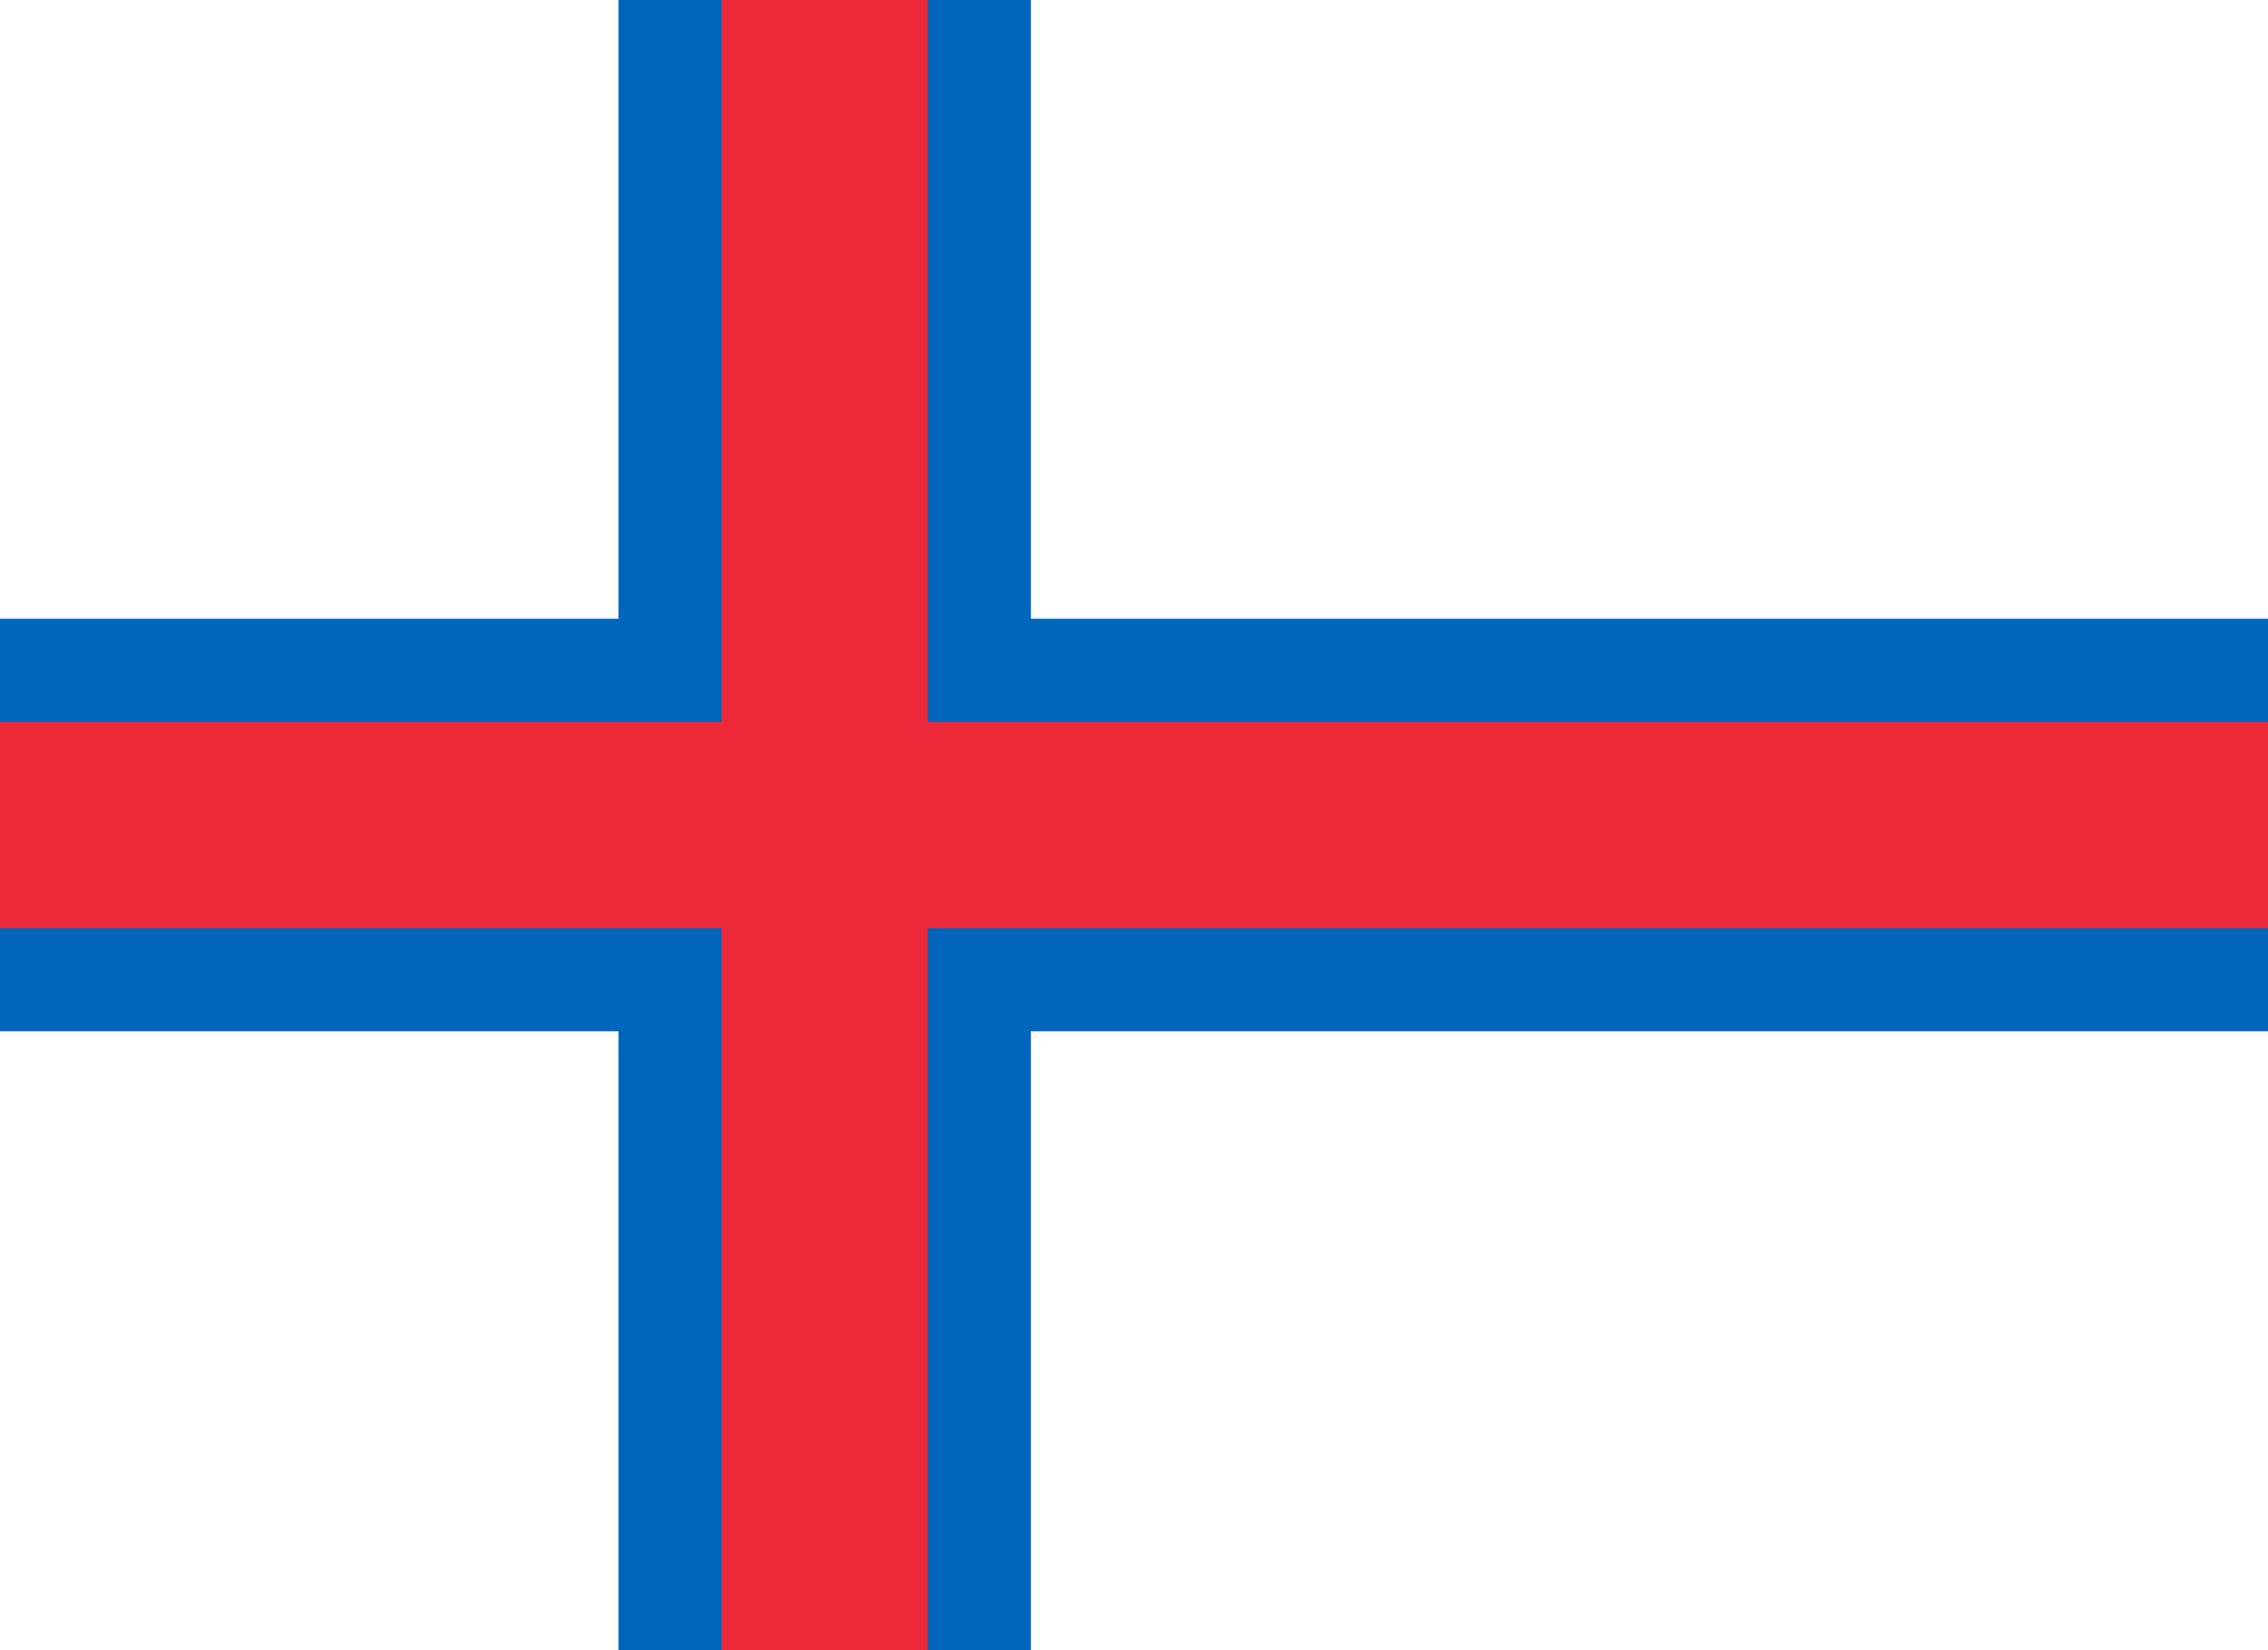 Facts of the Faroe Islands